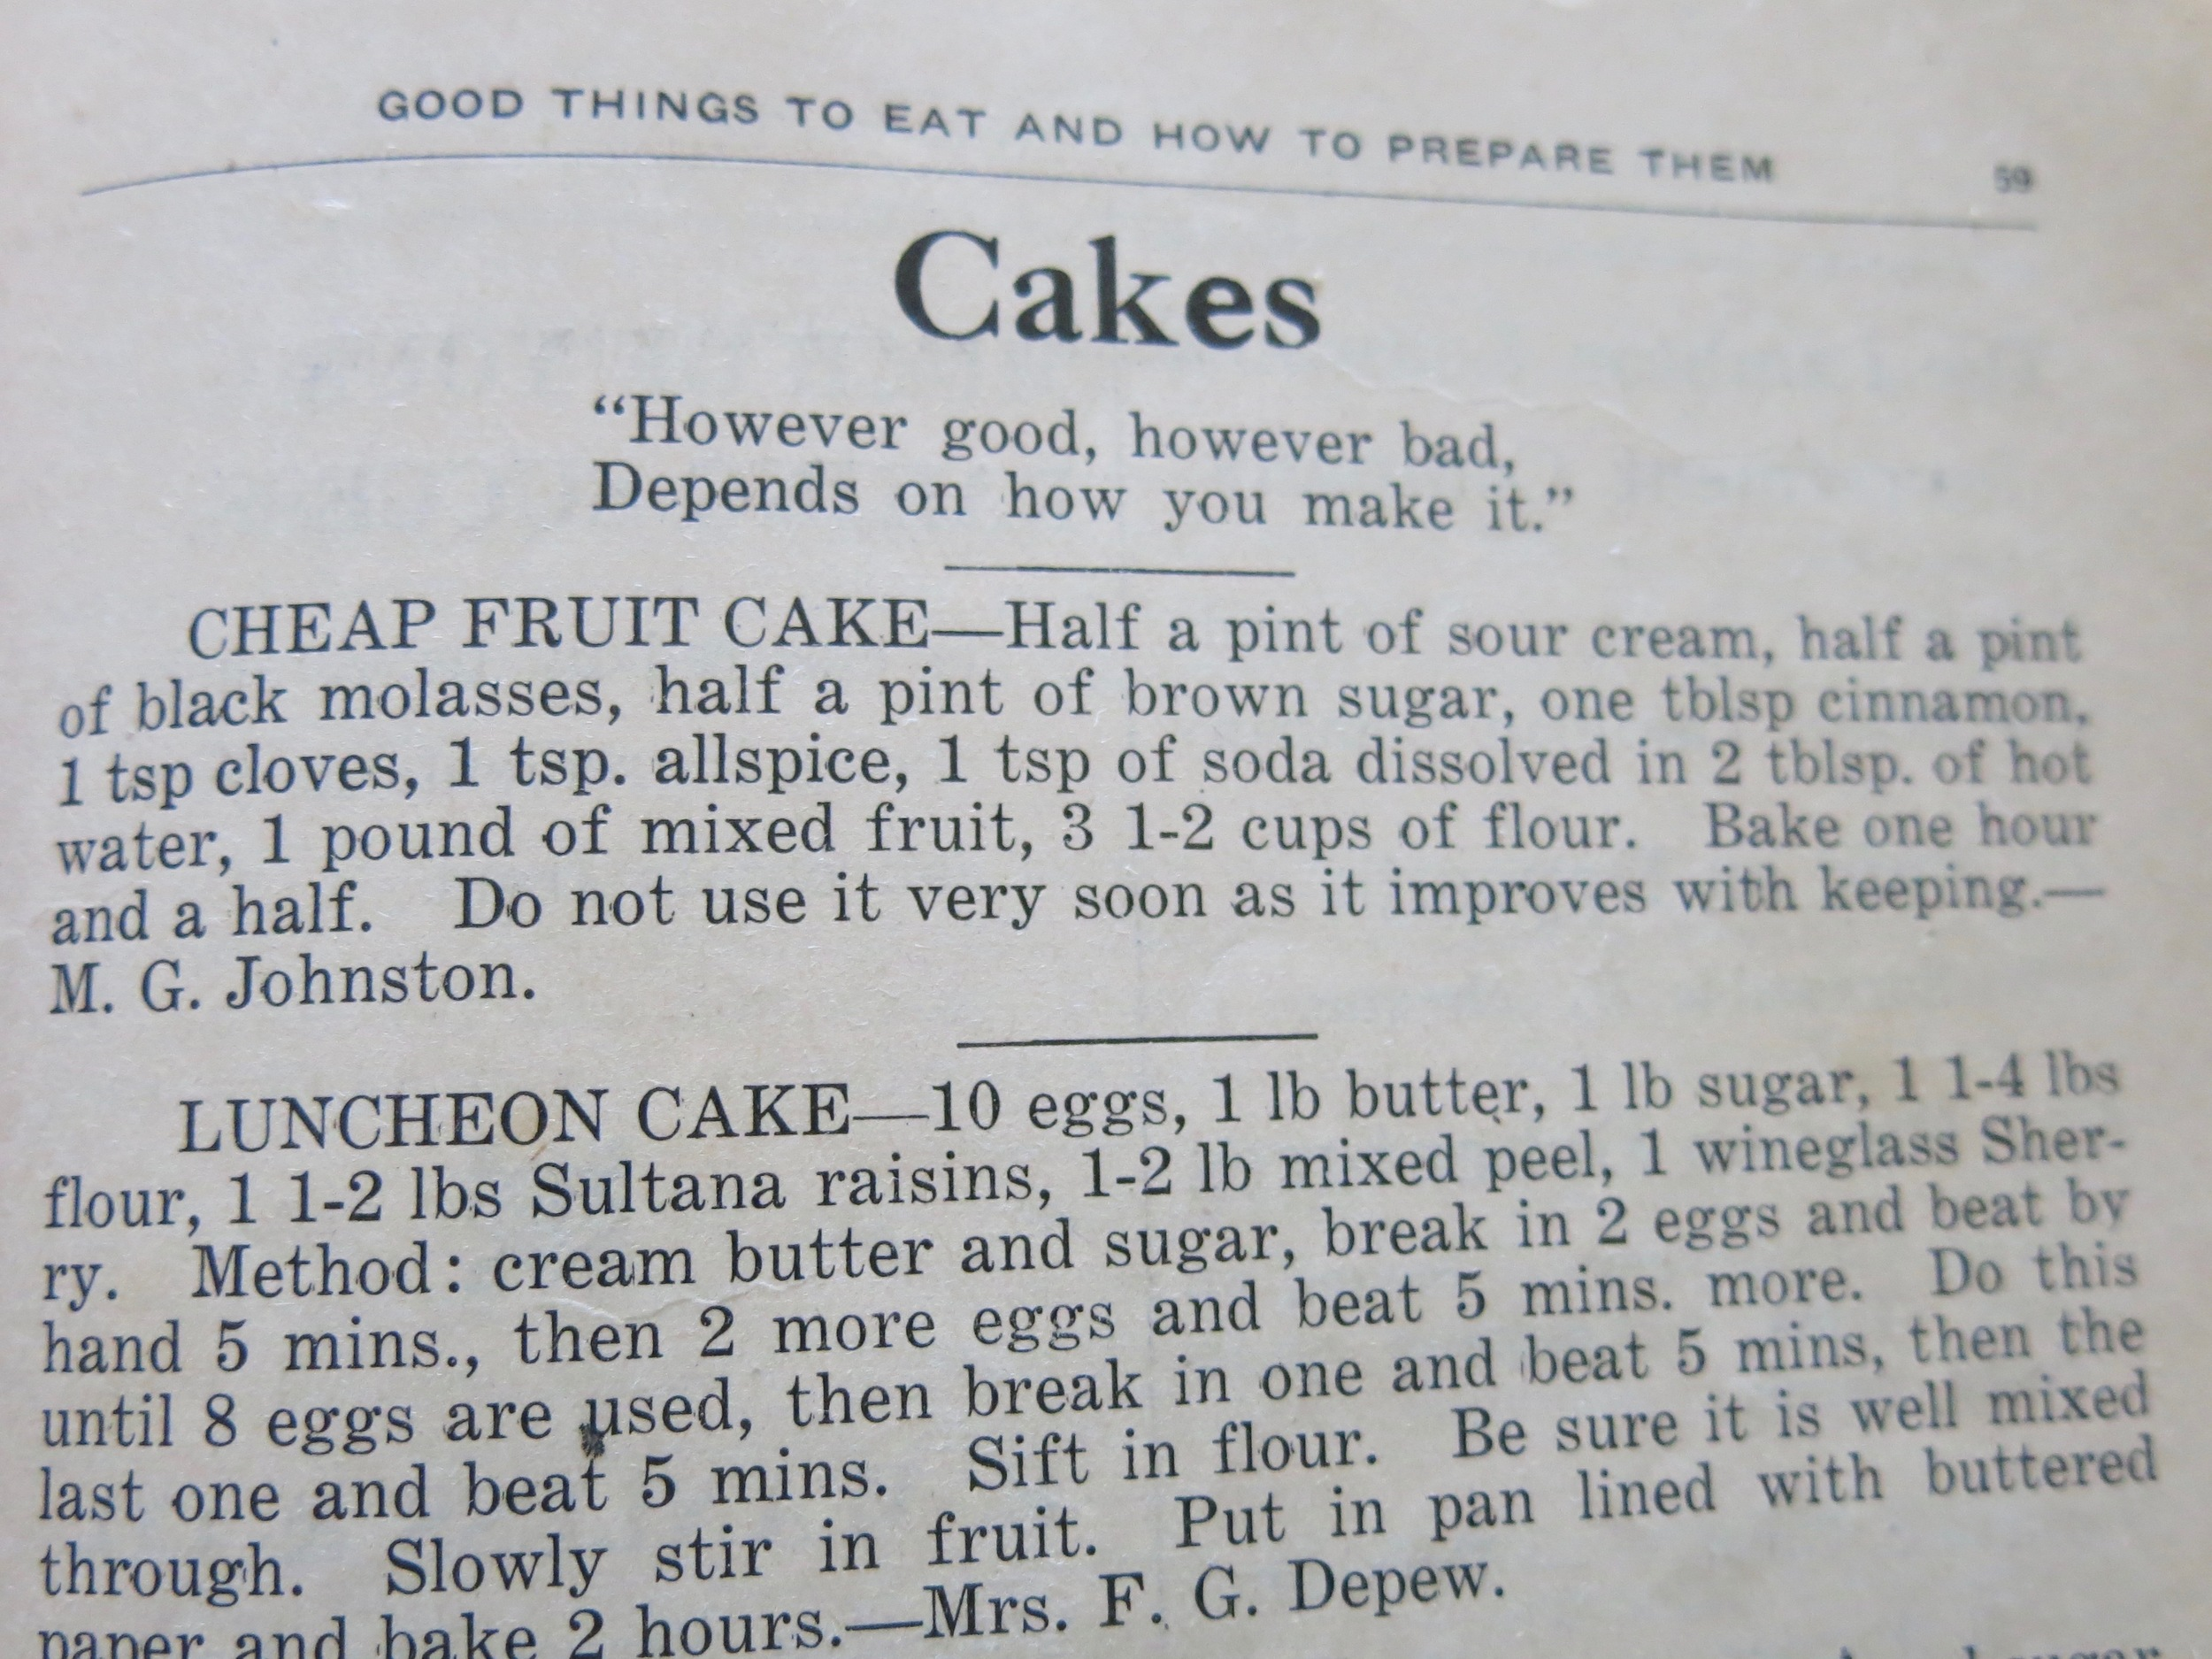 Luncheon Cake was submitted by Mrs. Depew. That's an unfortunate name.